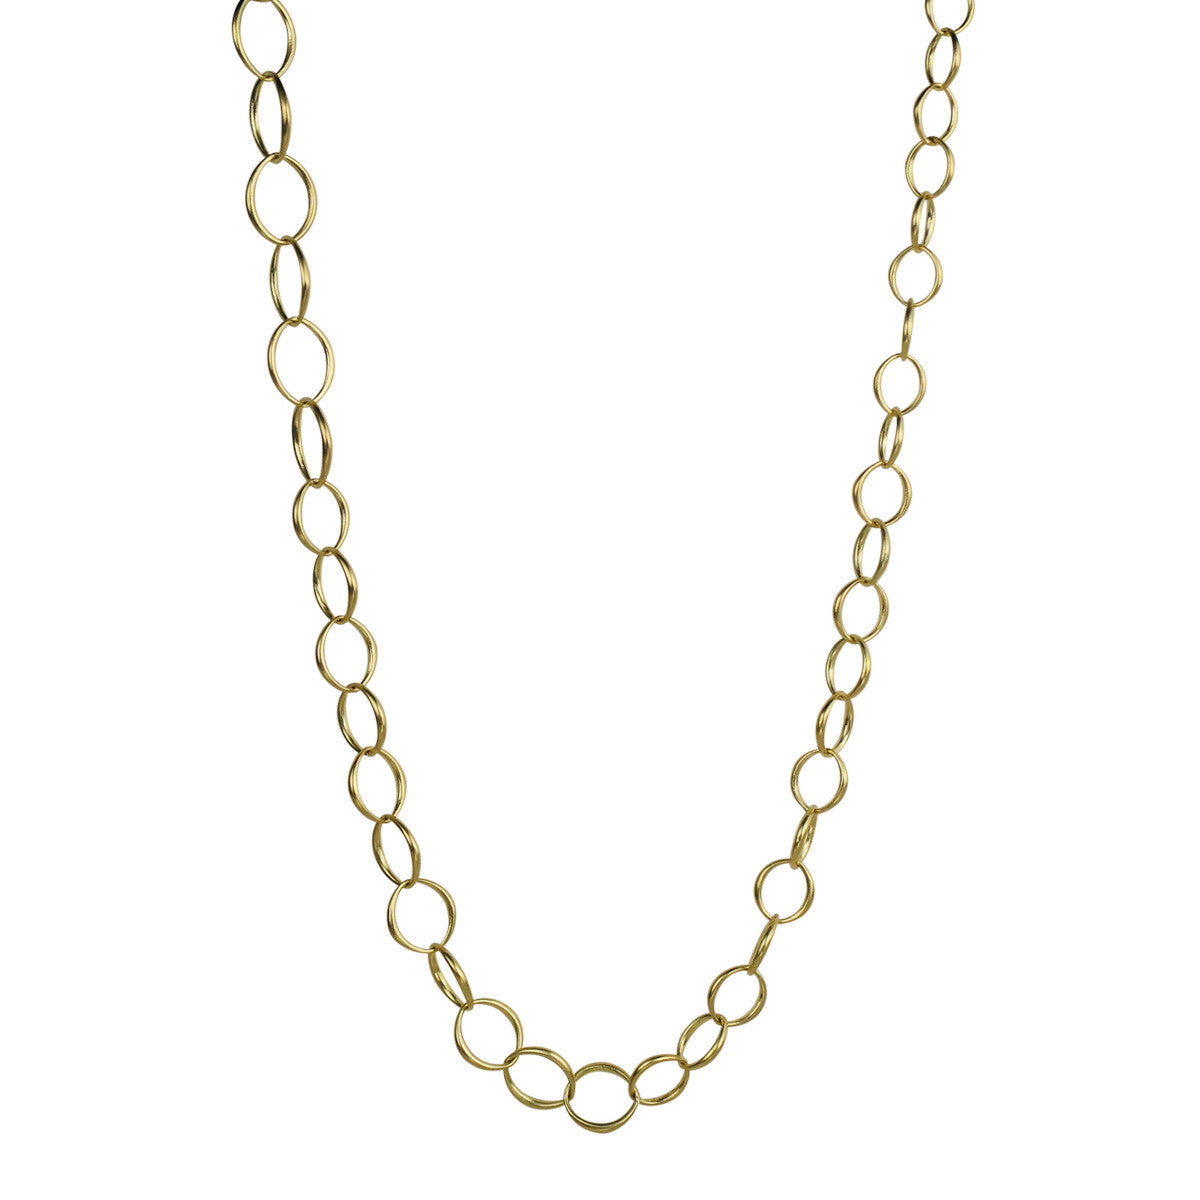 18K Gold Graduated O' Chain